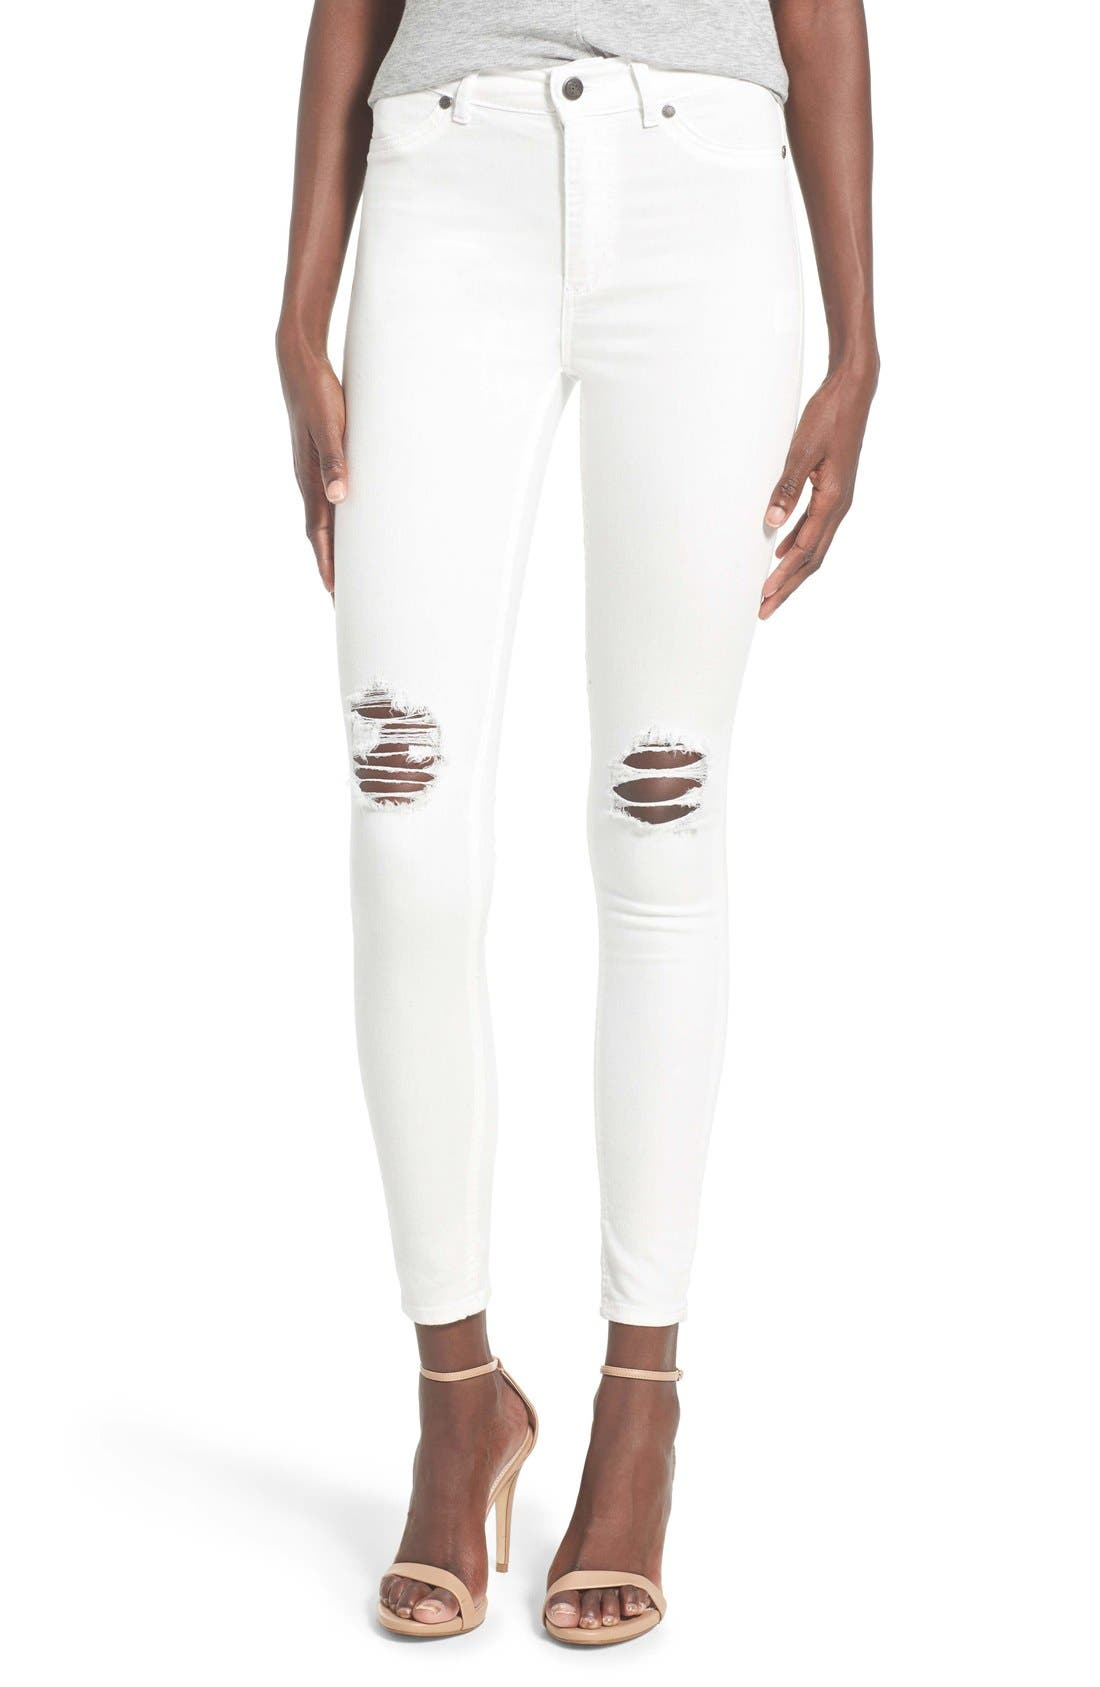 Alternate Image 1 Selected - Cheap Monday High Rise Distressed Skinny Jeans